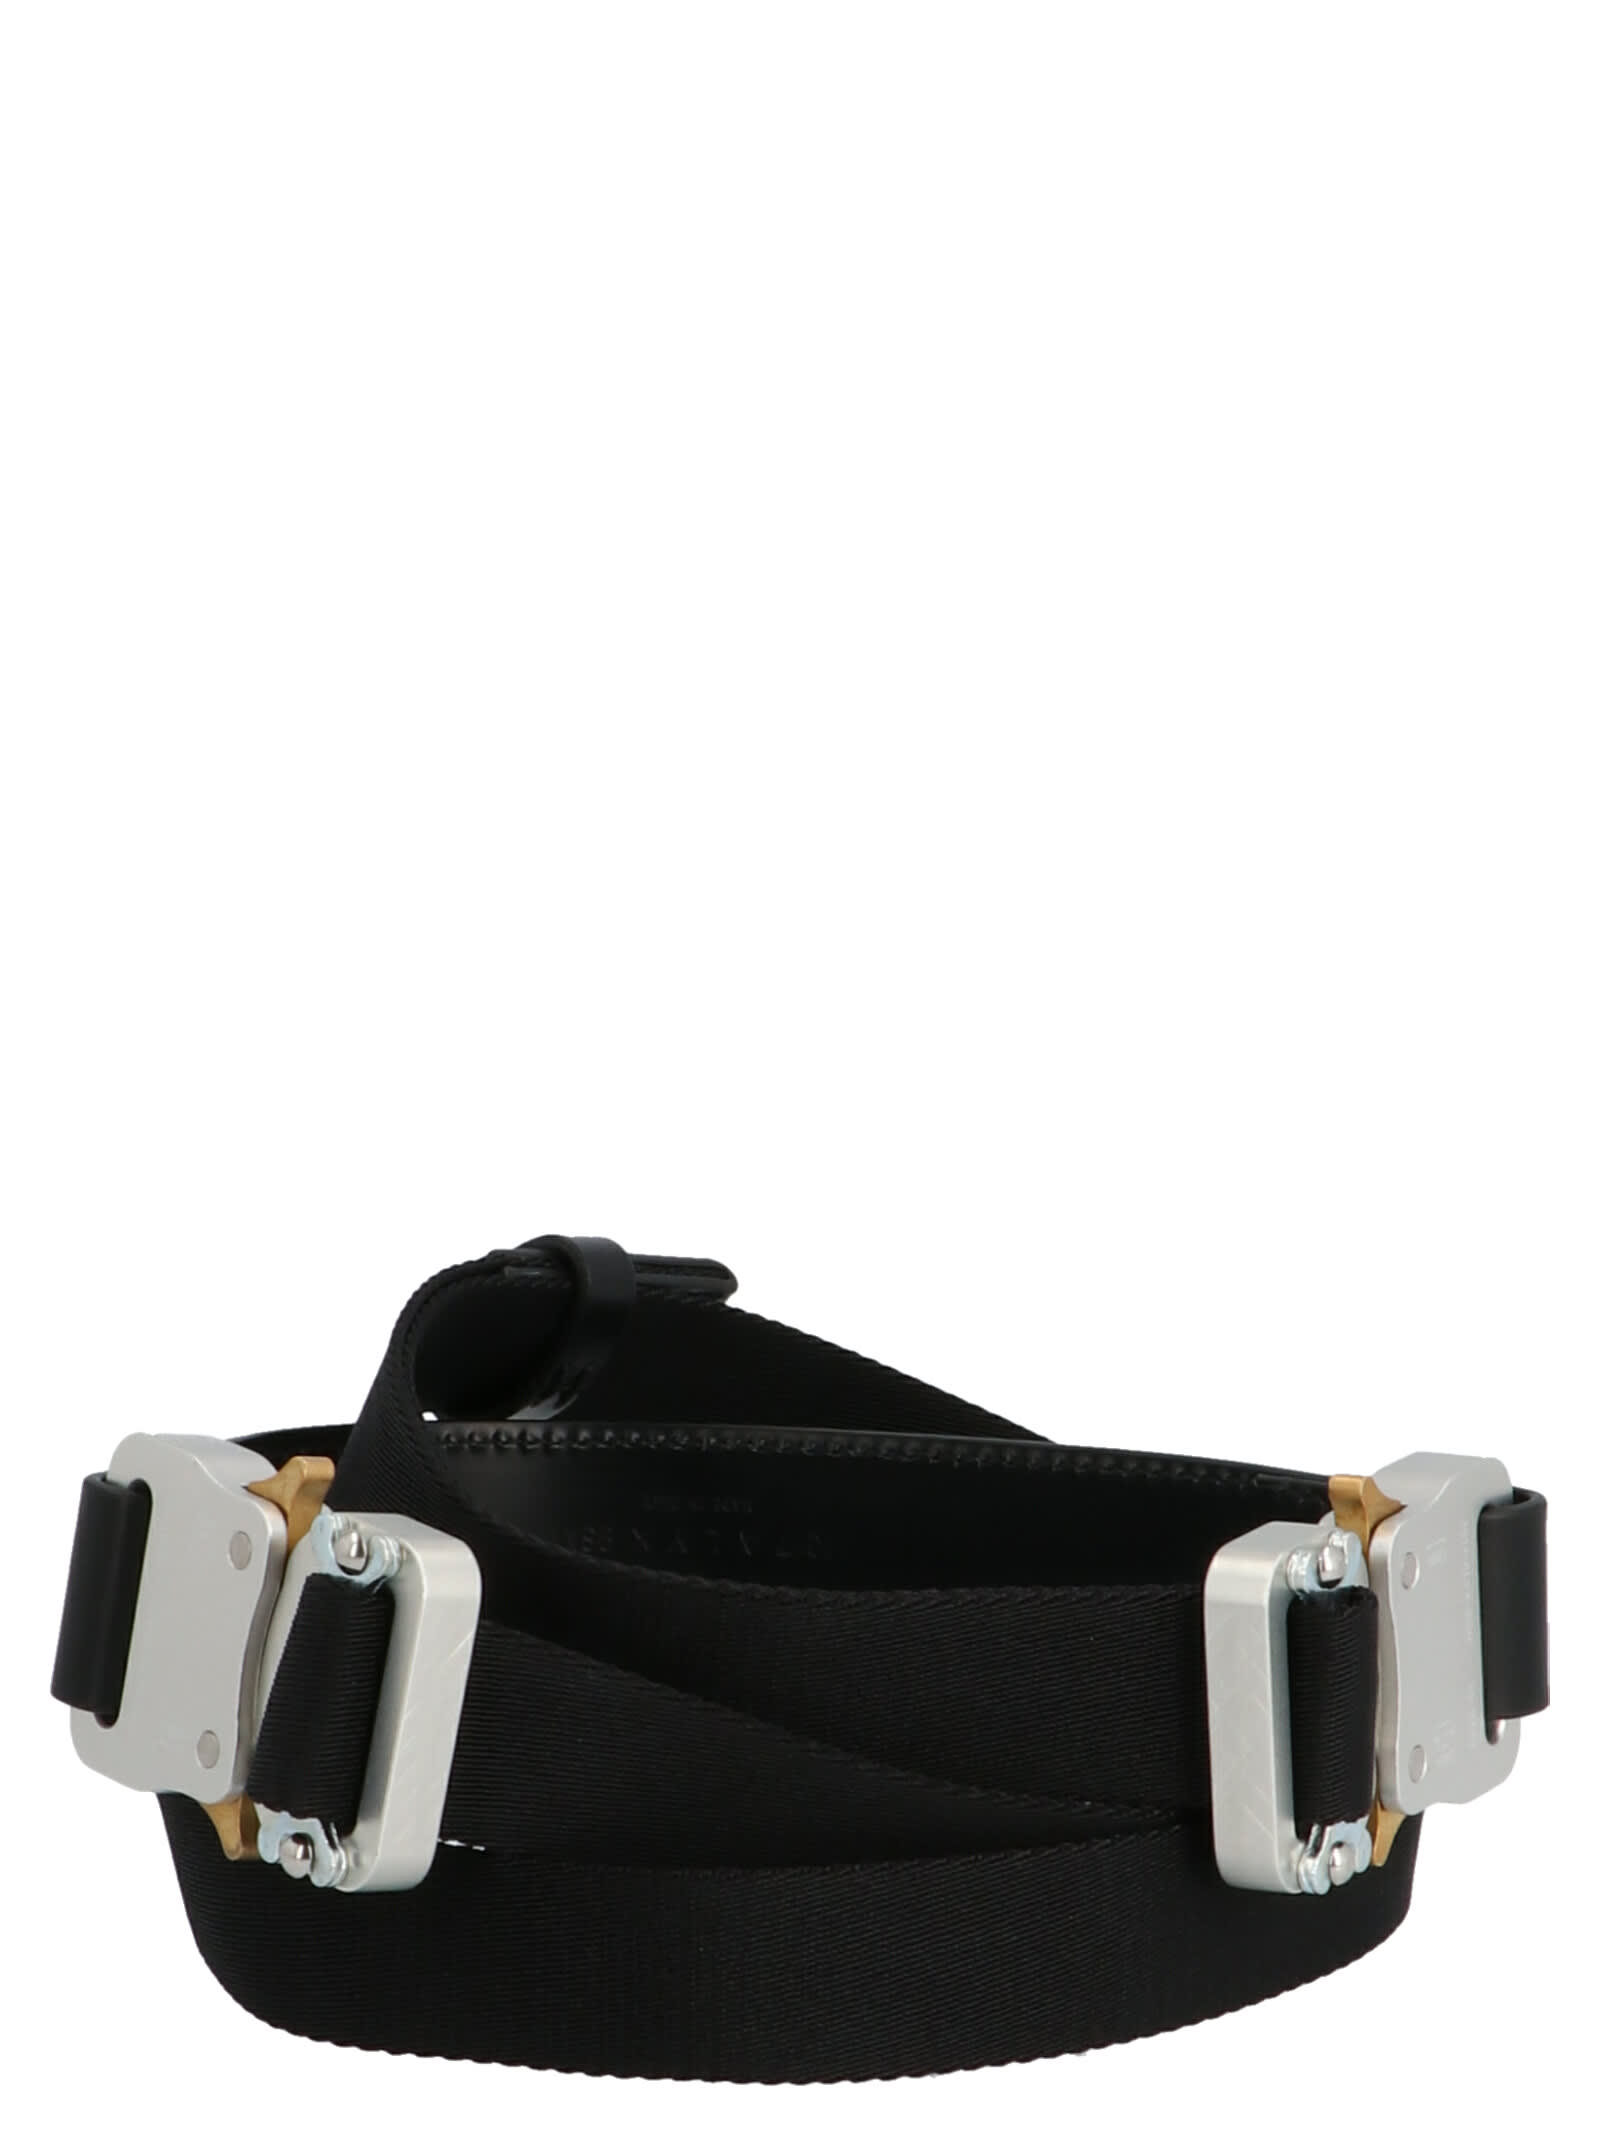 Alyx 1017 ALYX 9SM DOUBLE BUCKLE MEDIUM ROLLERCOASTER BELT BELT